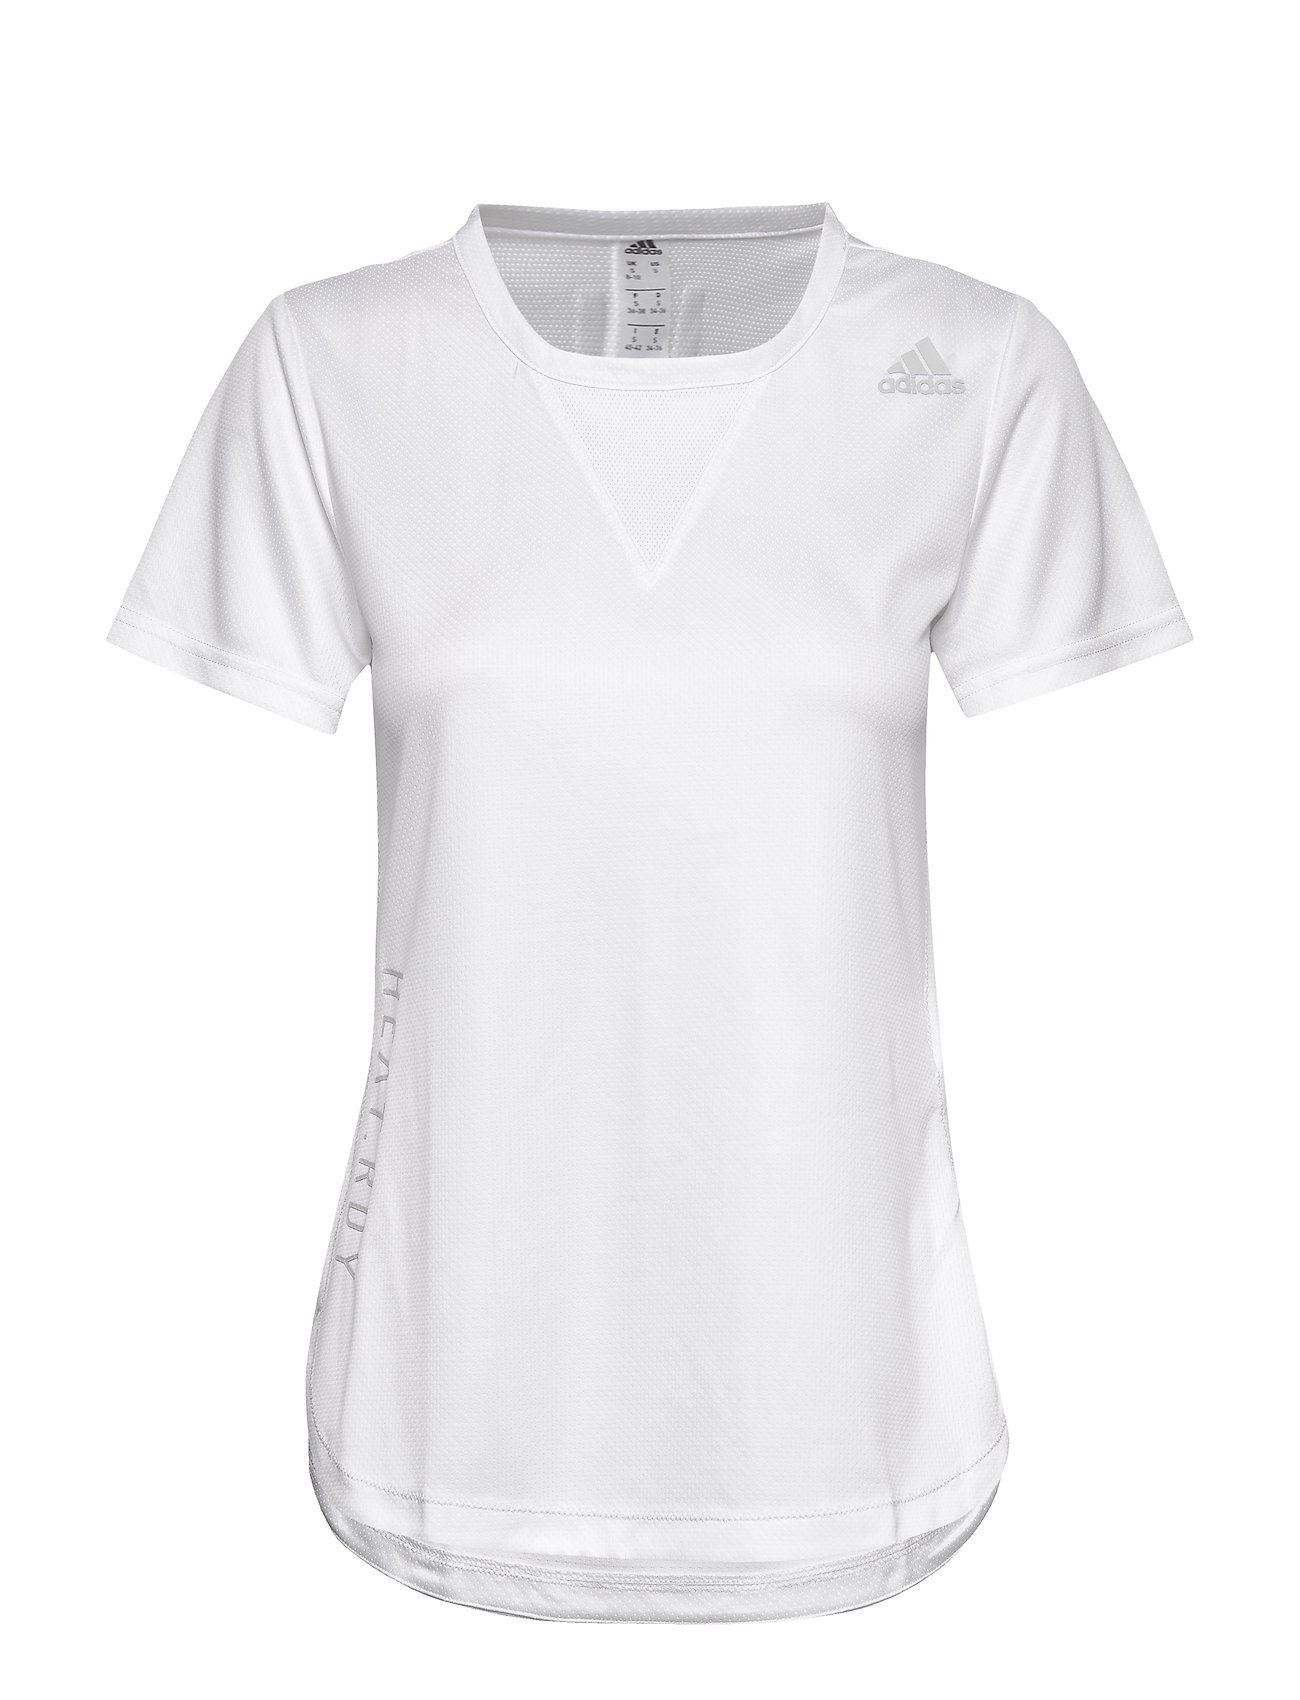 Image of Trg Tee H.Rdy T-shirt Top Hvid Adidas Performance (3406255935)